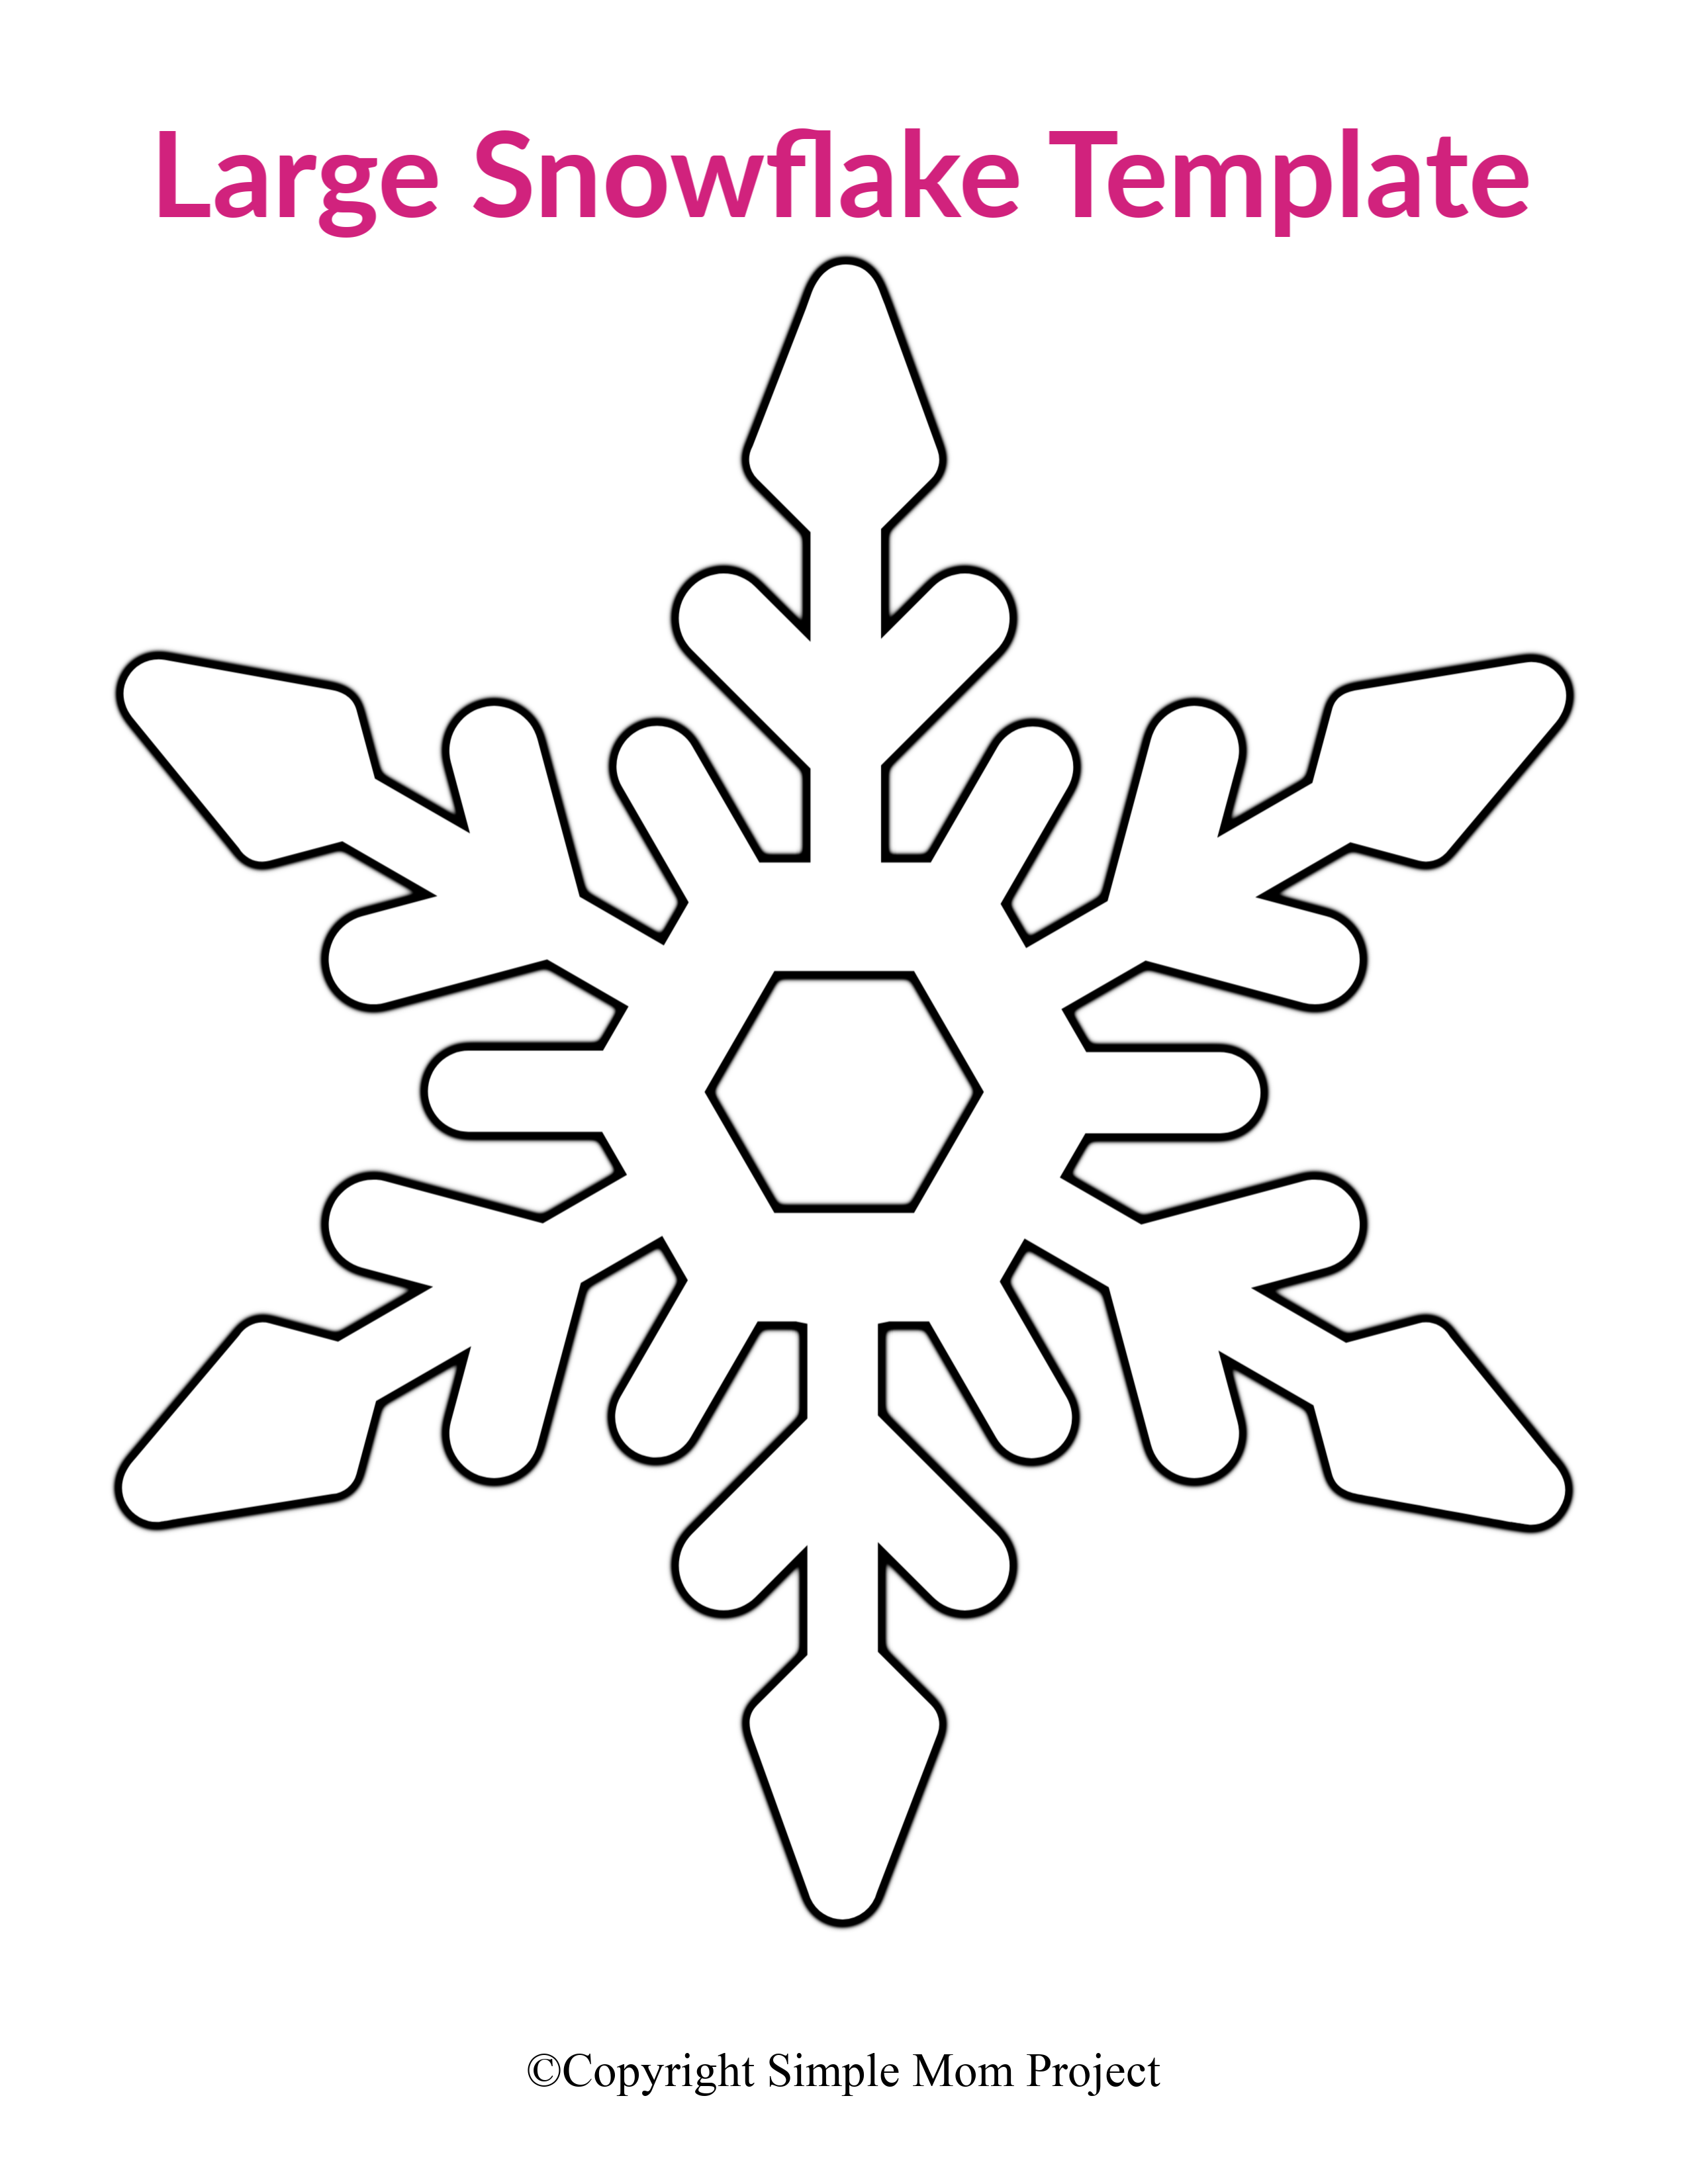 8 Free Printable Large Snowflake Templates - Simple Mom ...